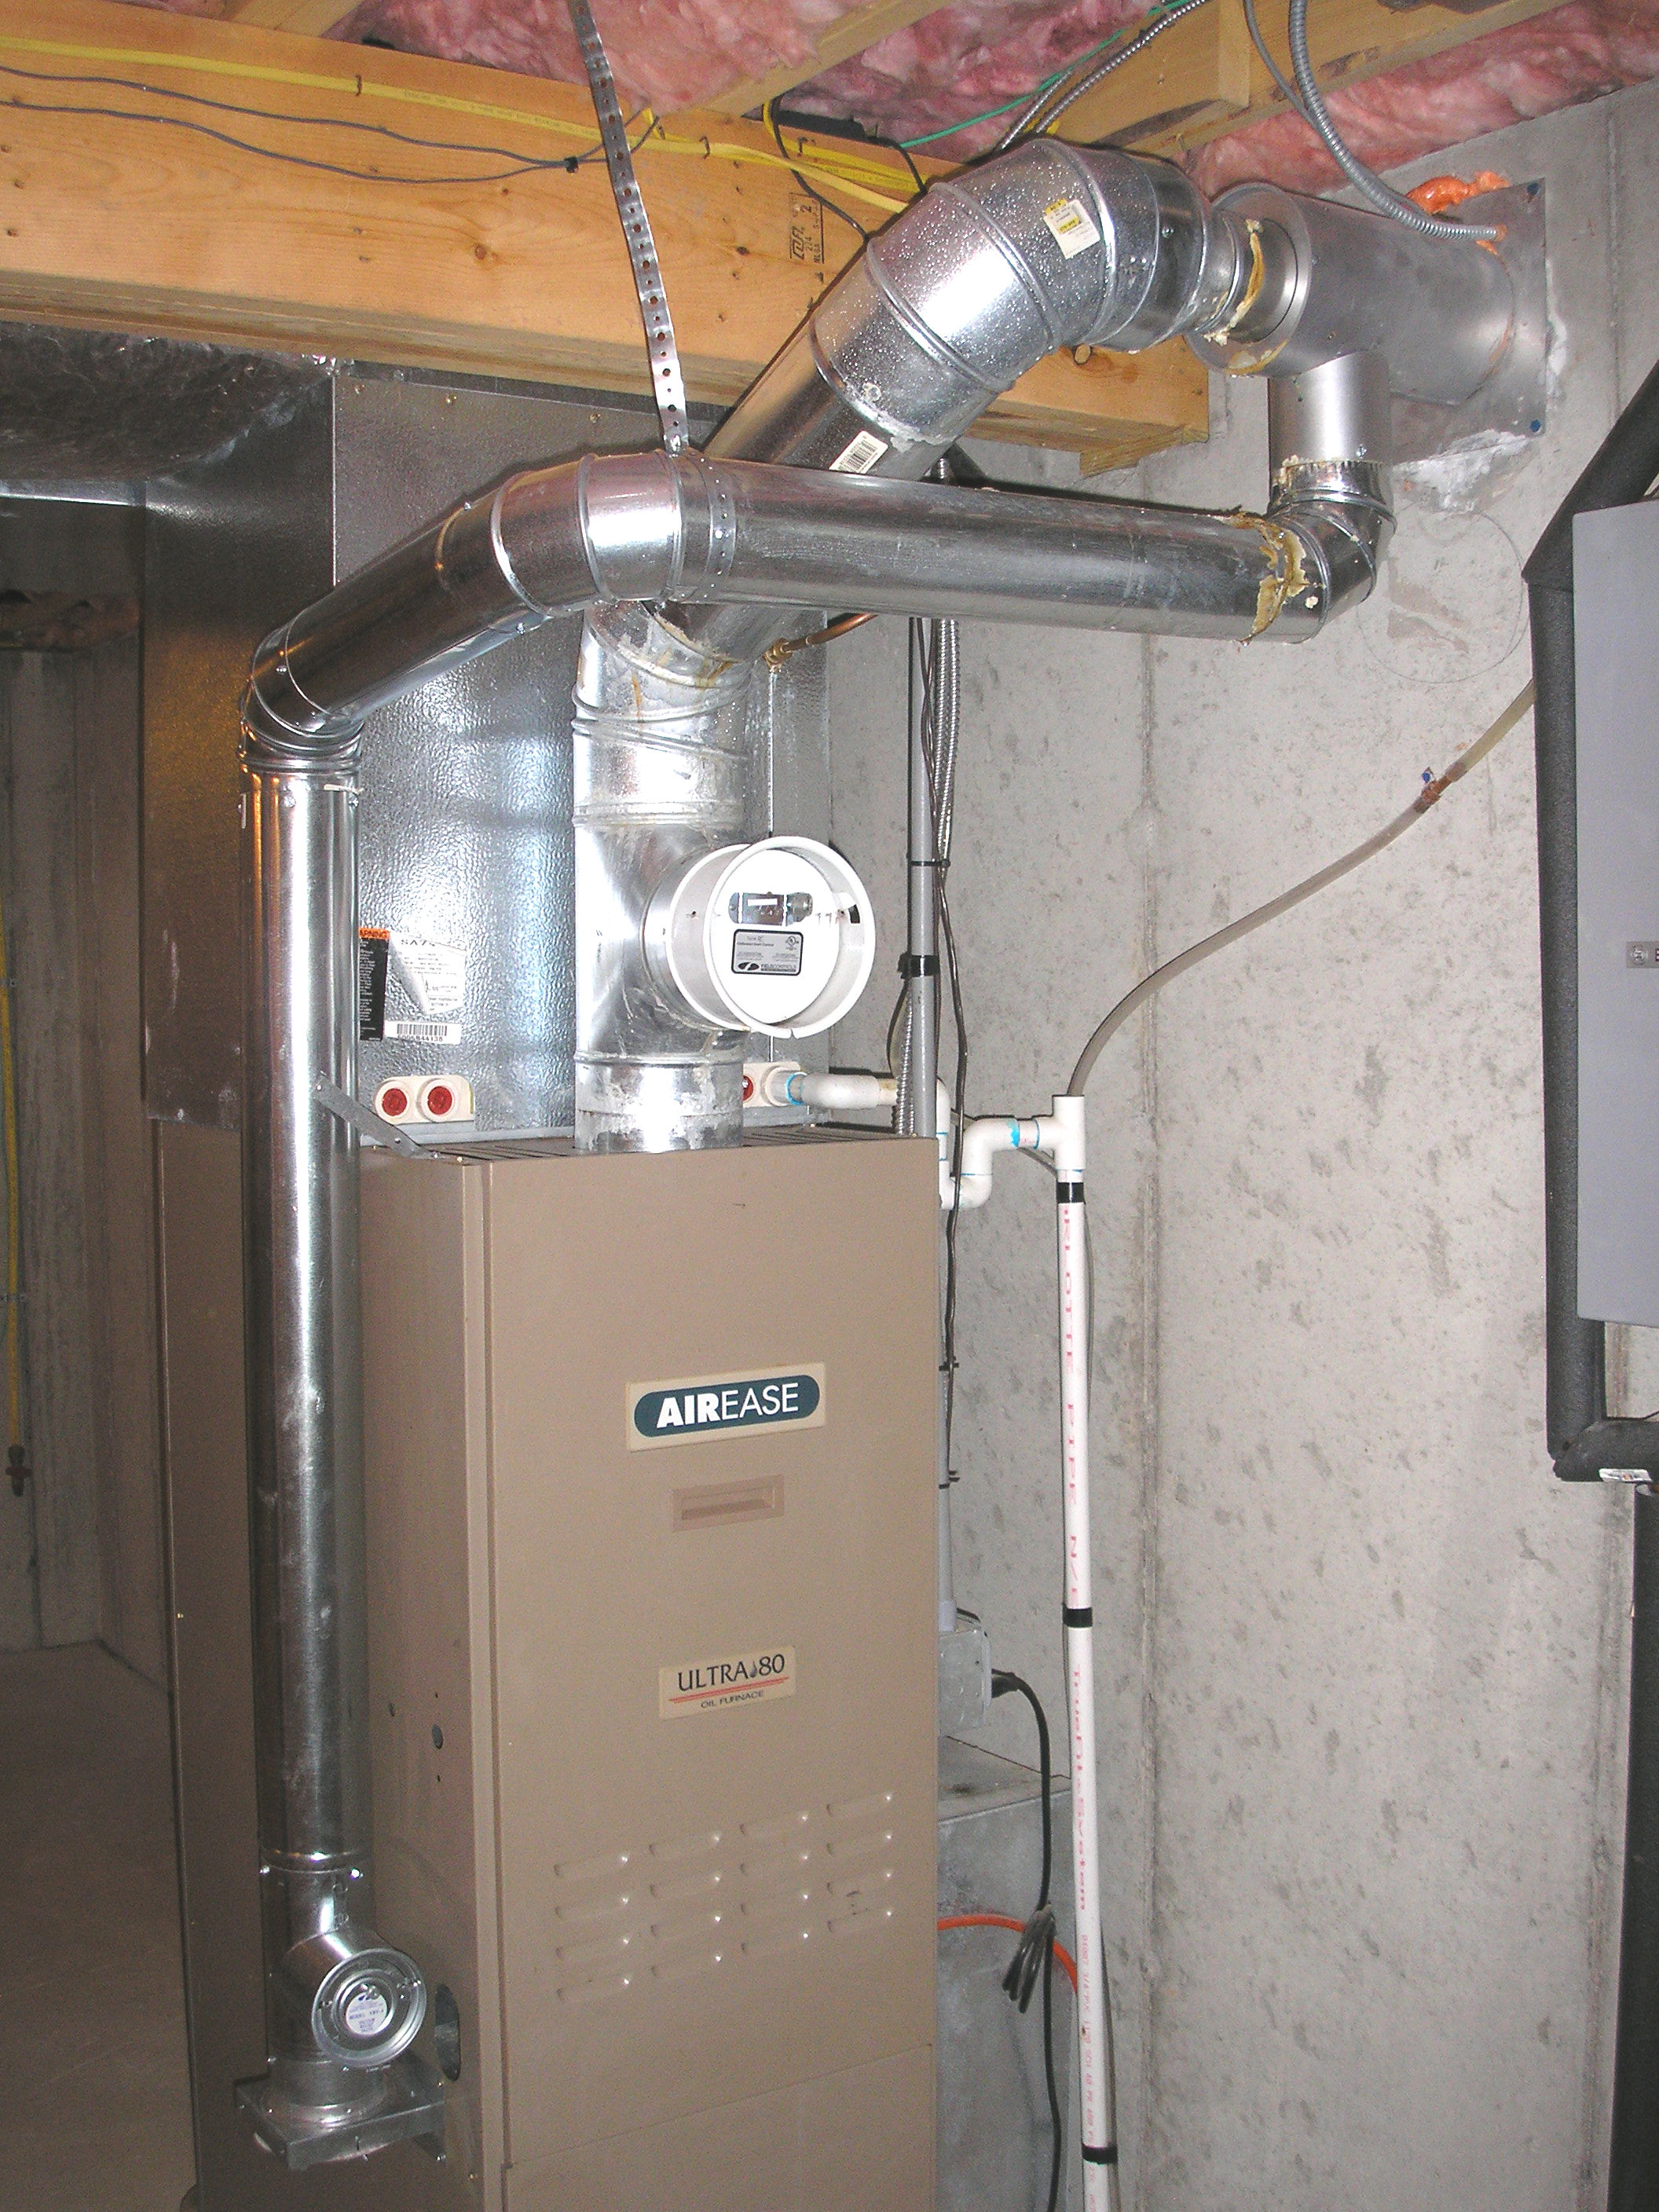 Power Vent Condensation Problems Heating Help The Wall